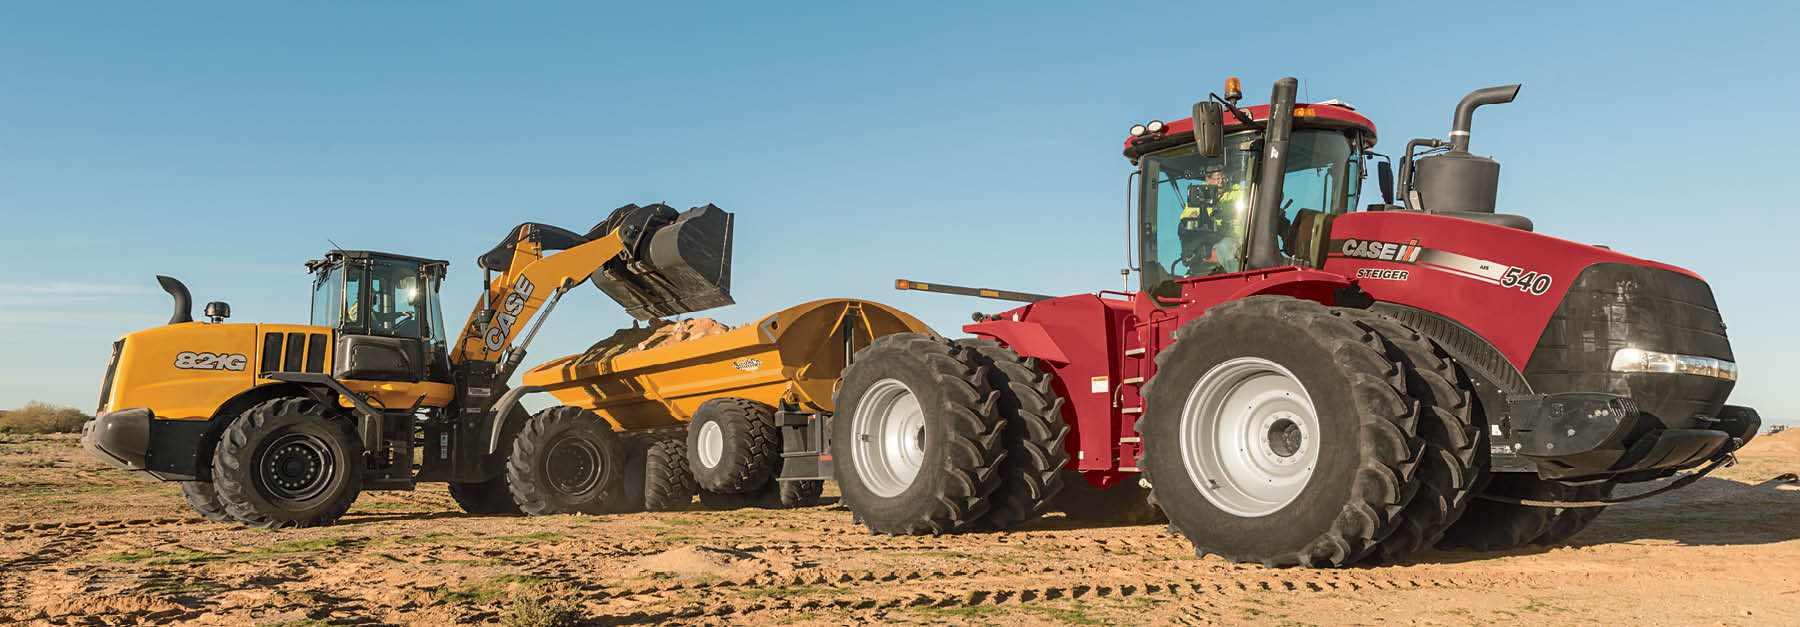 Steiger 540 & Case 821G wheel loader